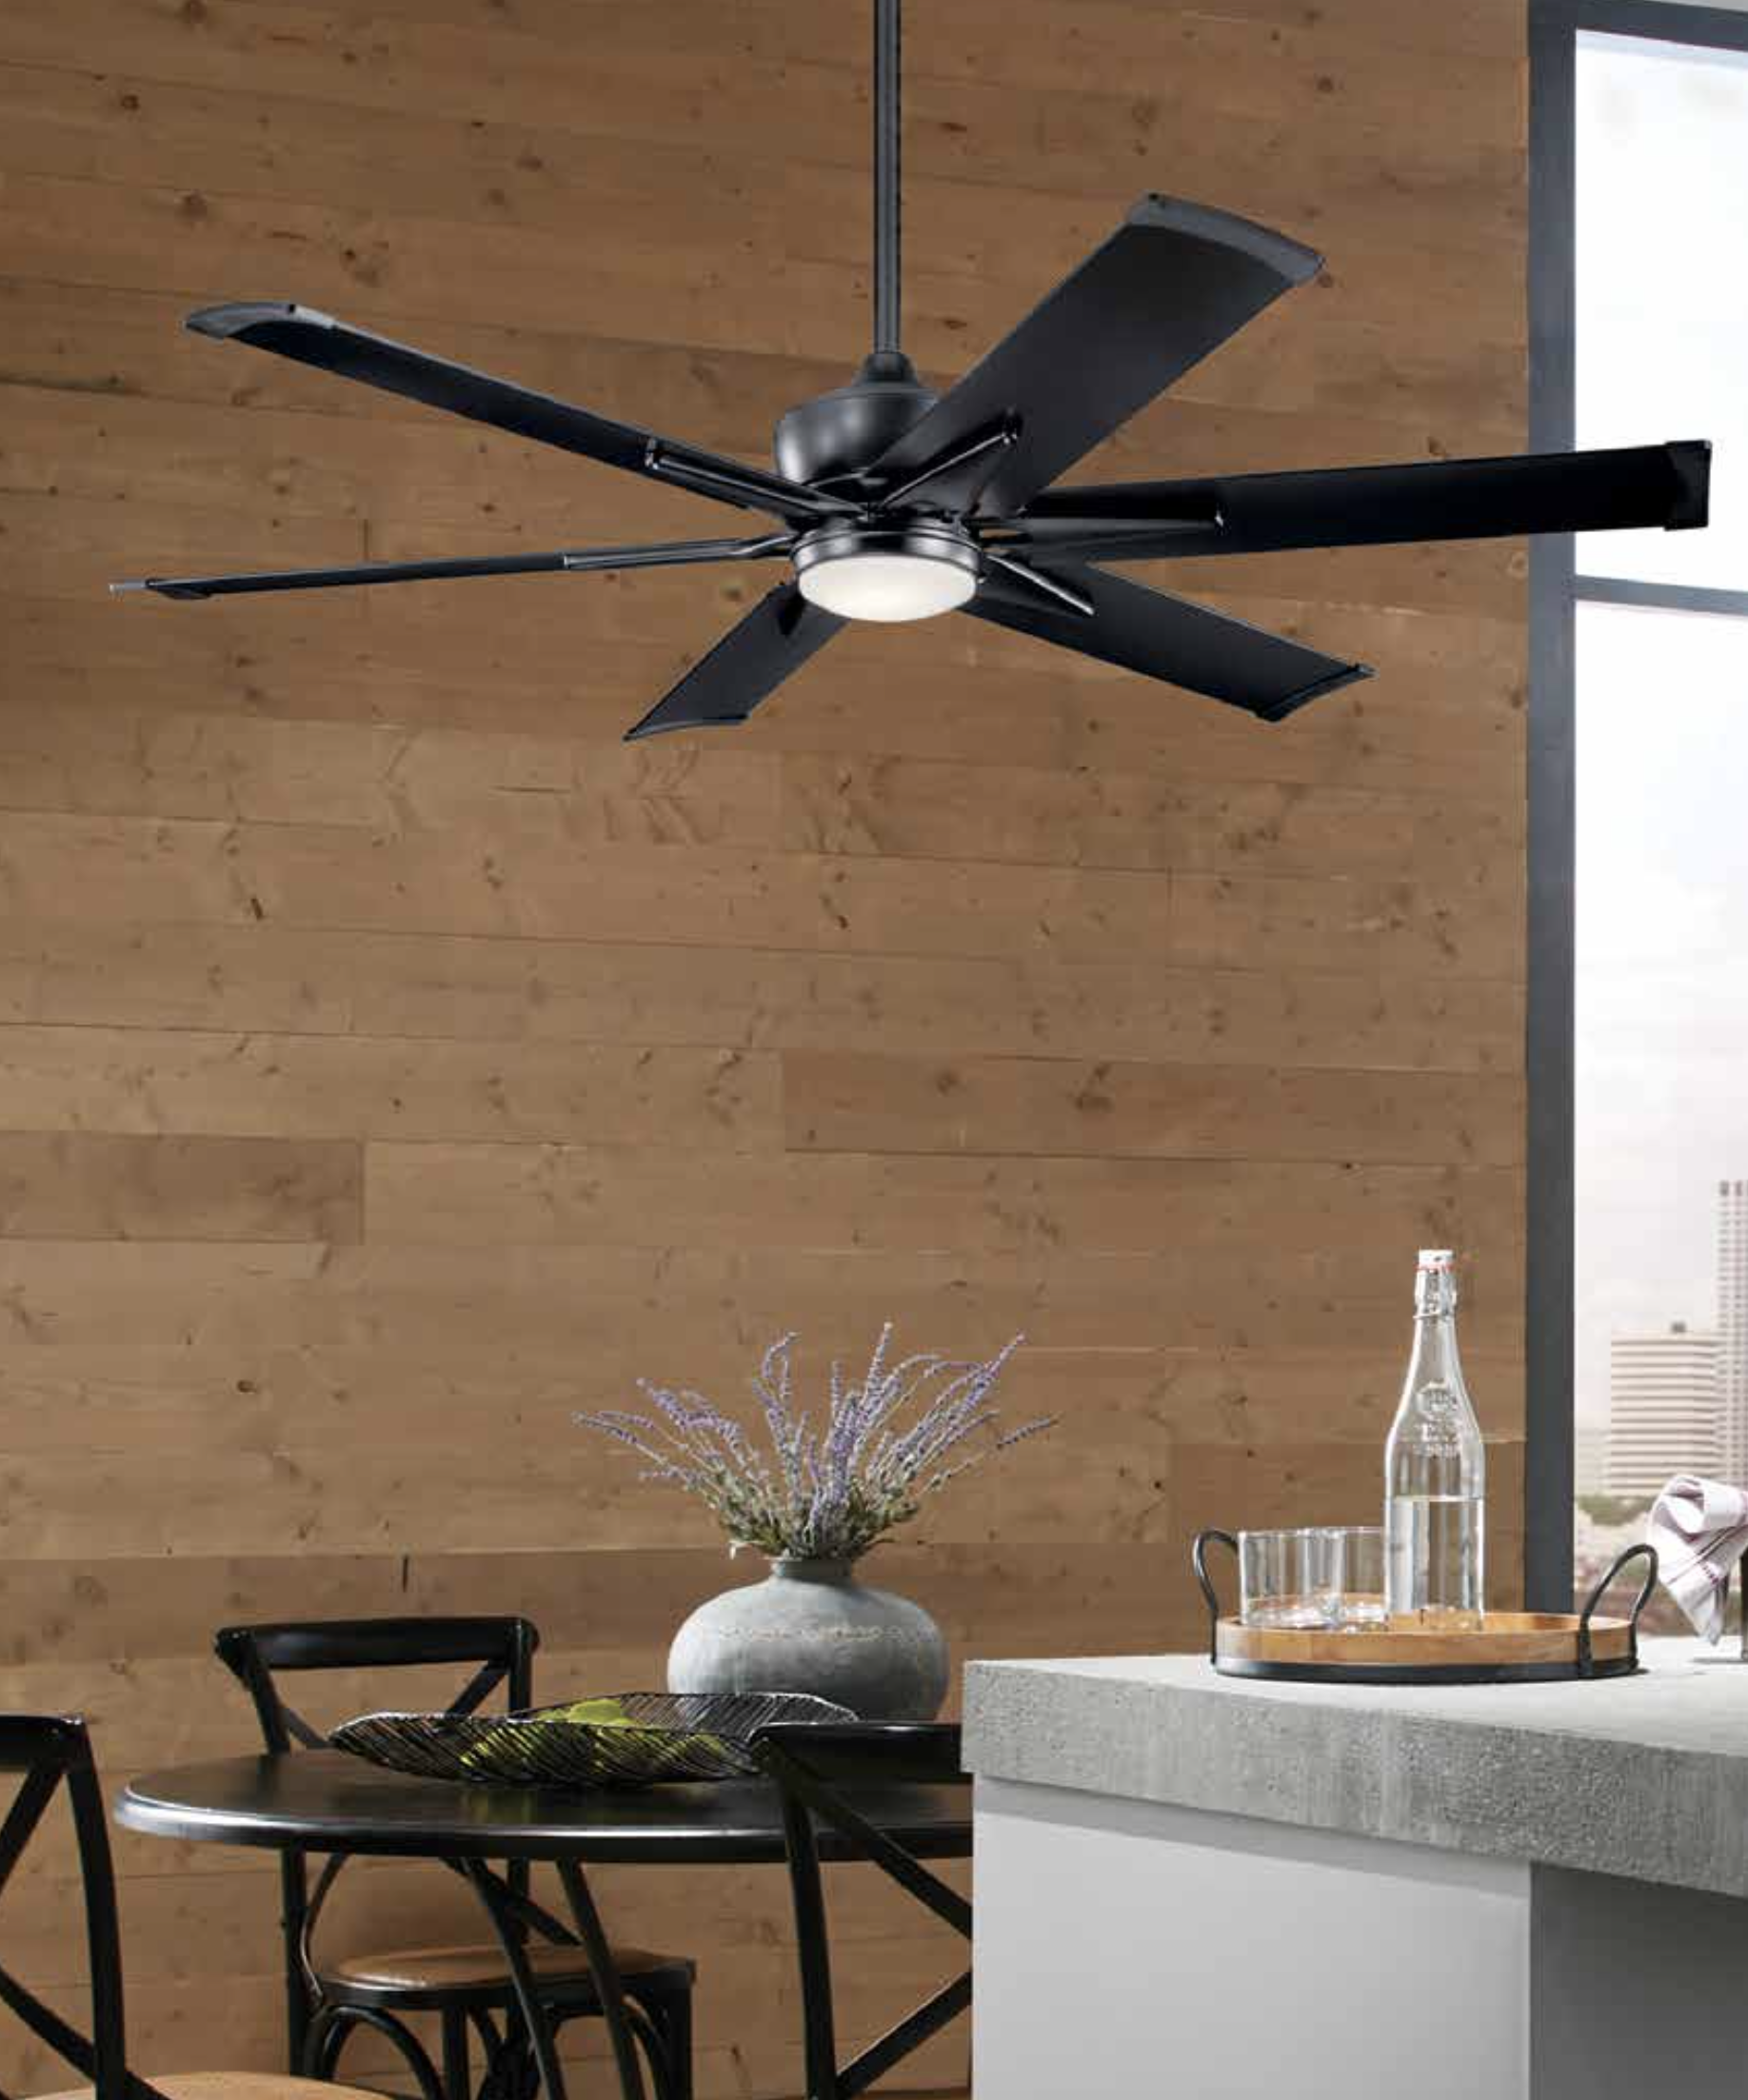 National Ceiling Fan Day is About the Entire Year Estrin